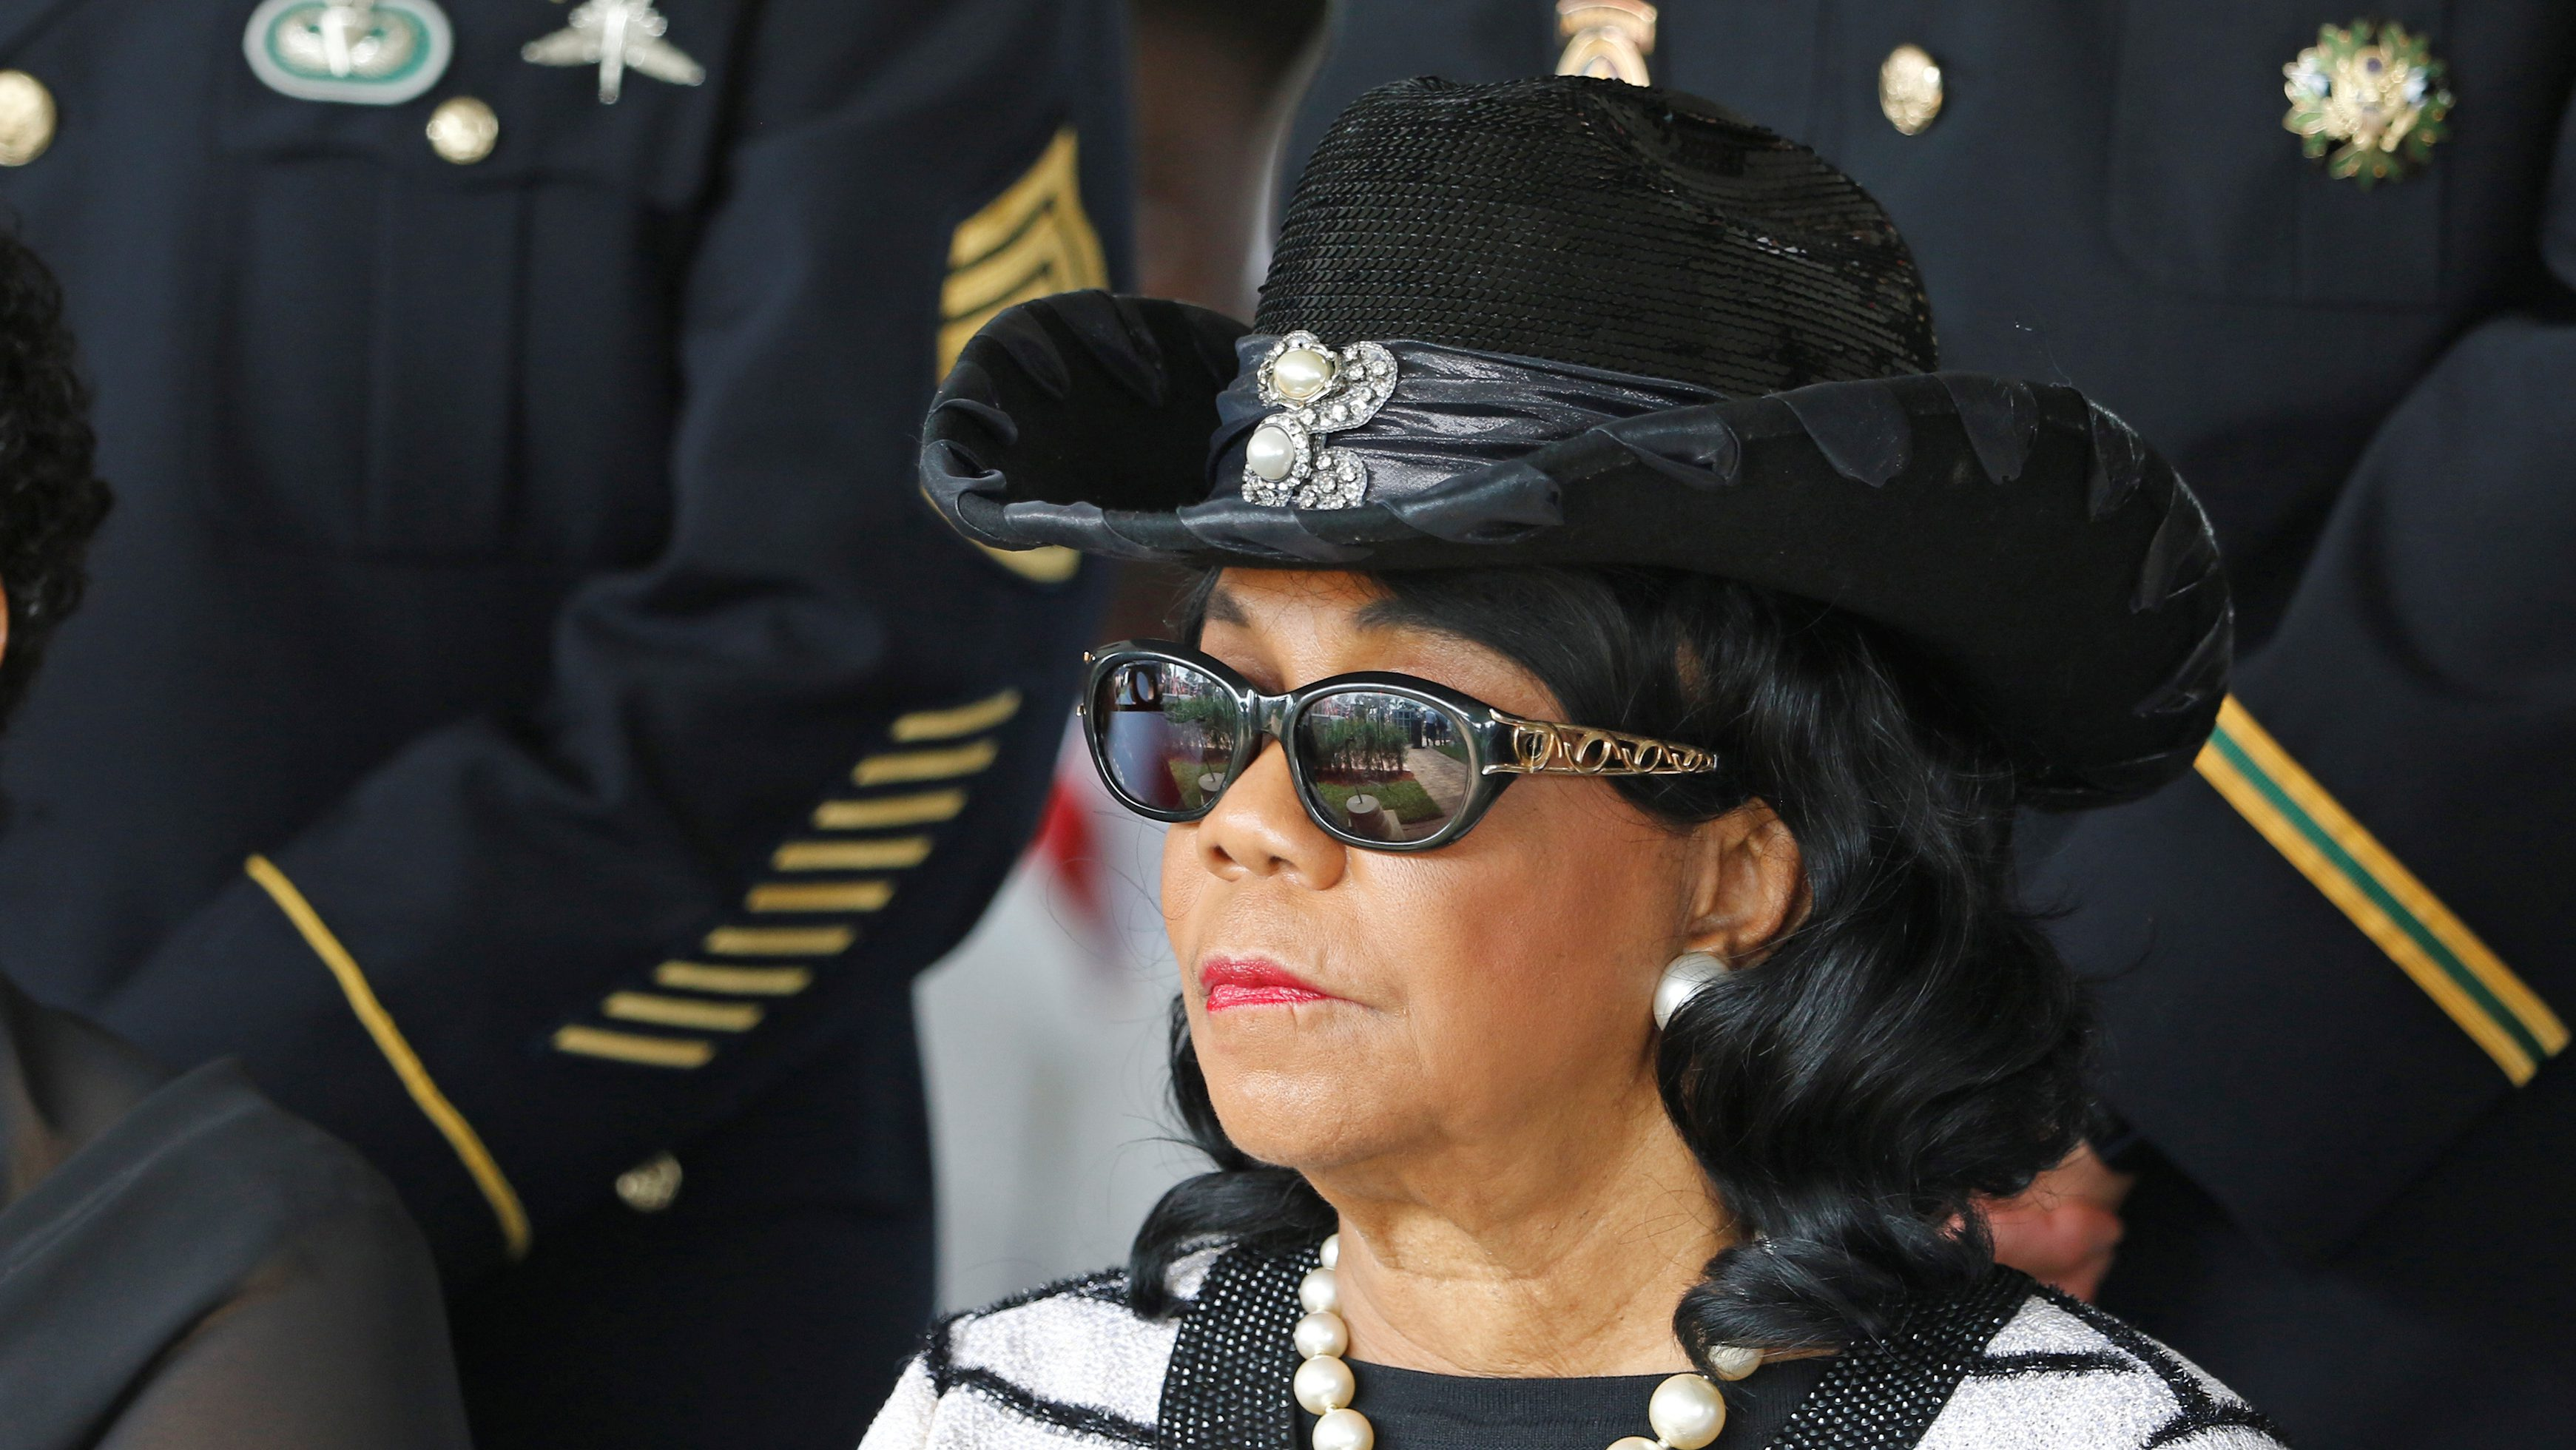 U.S. Rep. Frederica Wilson (D-FL) attends the graveside service for U.S. Army Sergeant La David Johnson, who was among four special forces soldiers killed in Niger, in Hollywood, Florida, October 21, 2017.  REUTERS/Joe Skipper - RC17B6DF5350